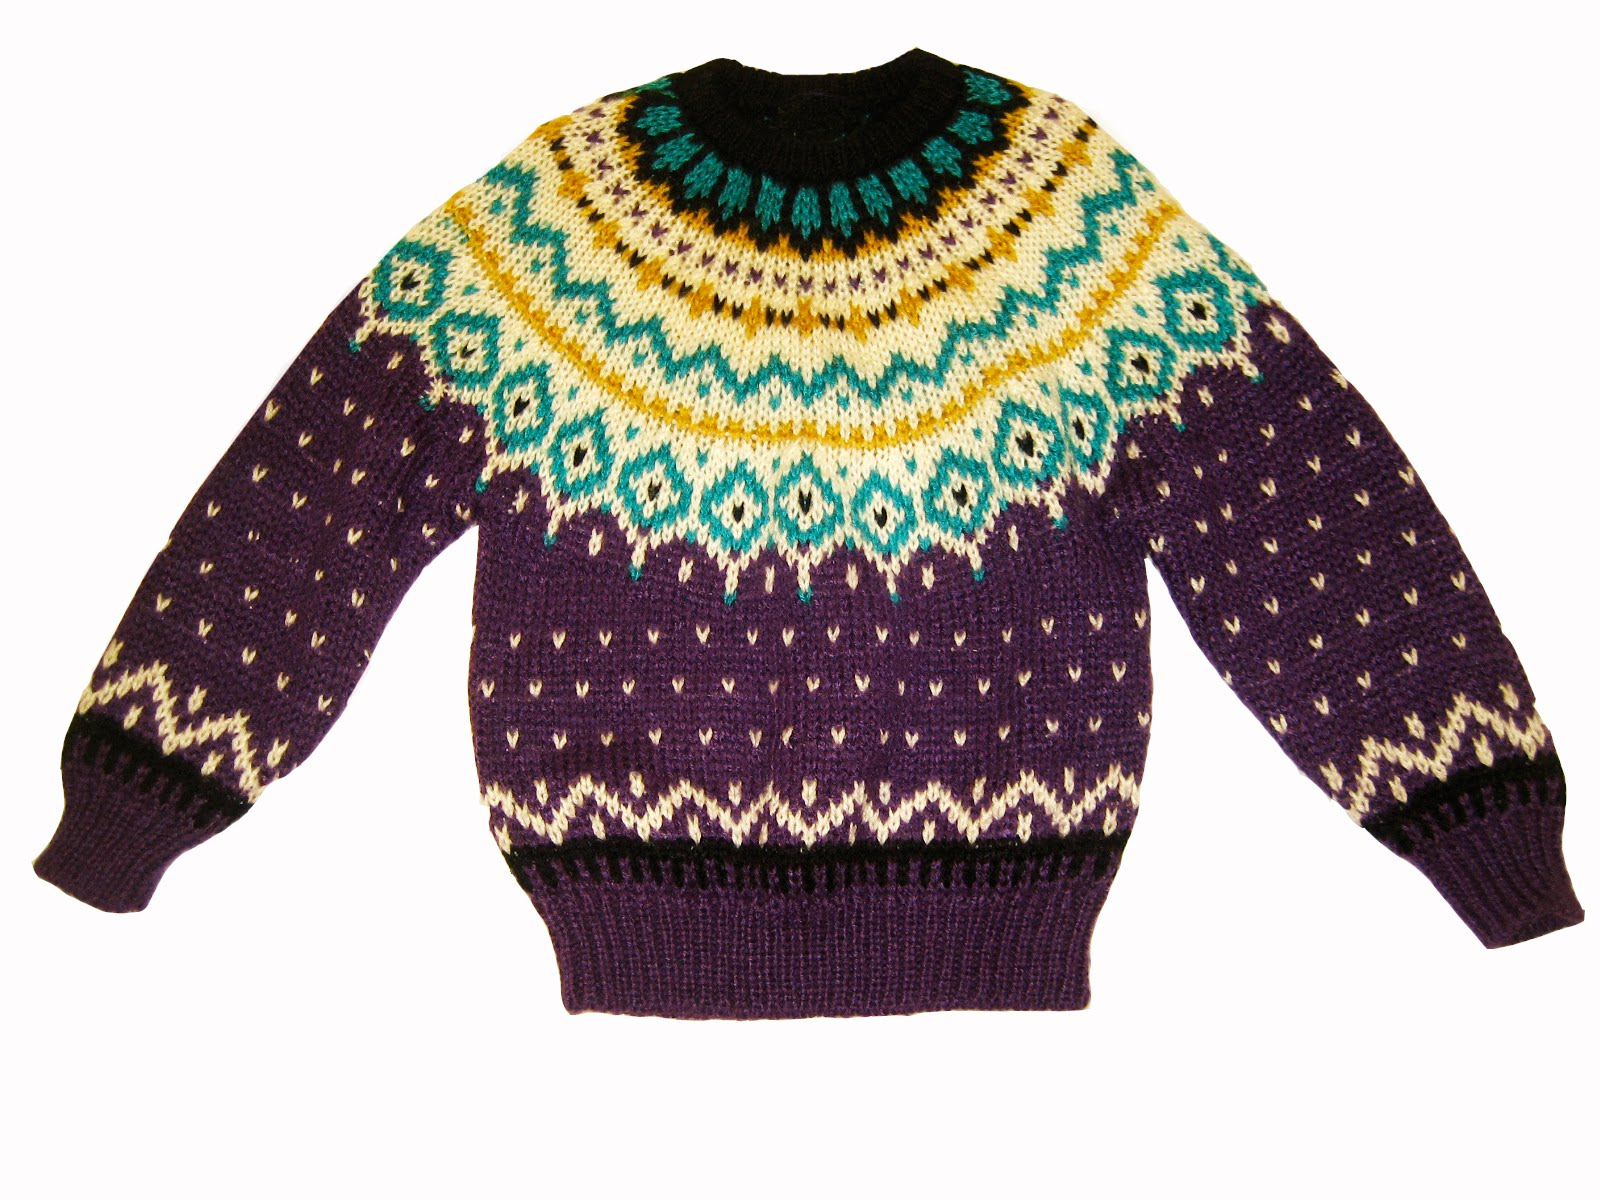 To Knit A Sweater 109